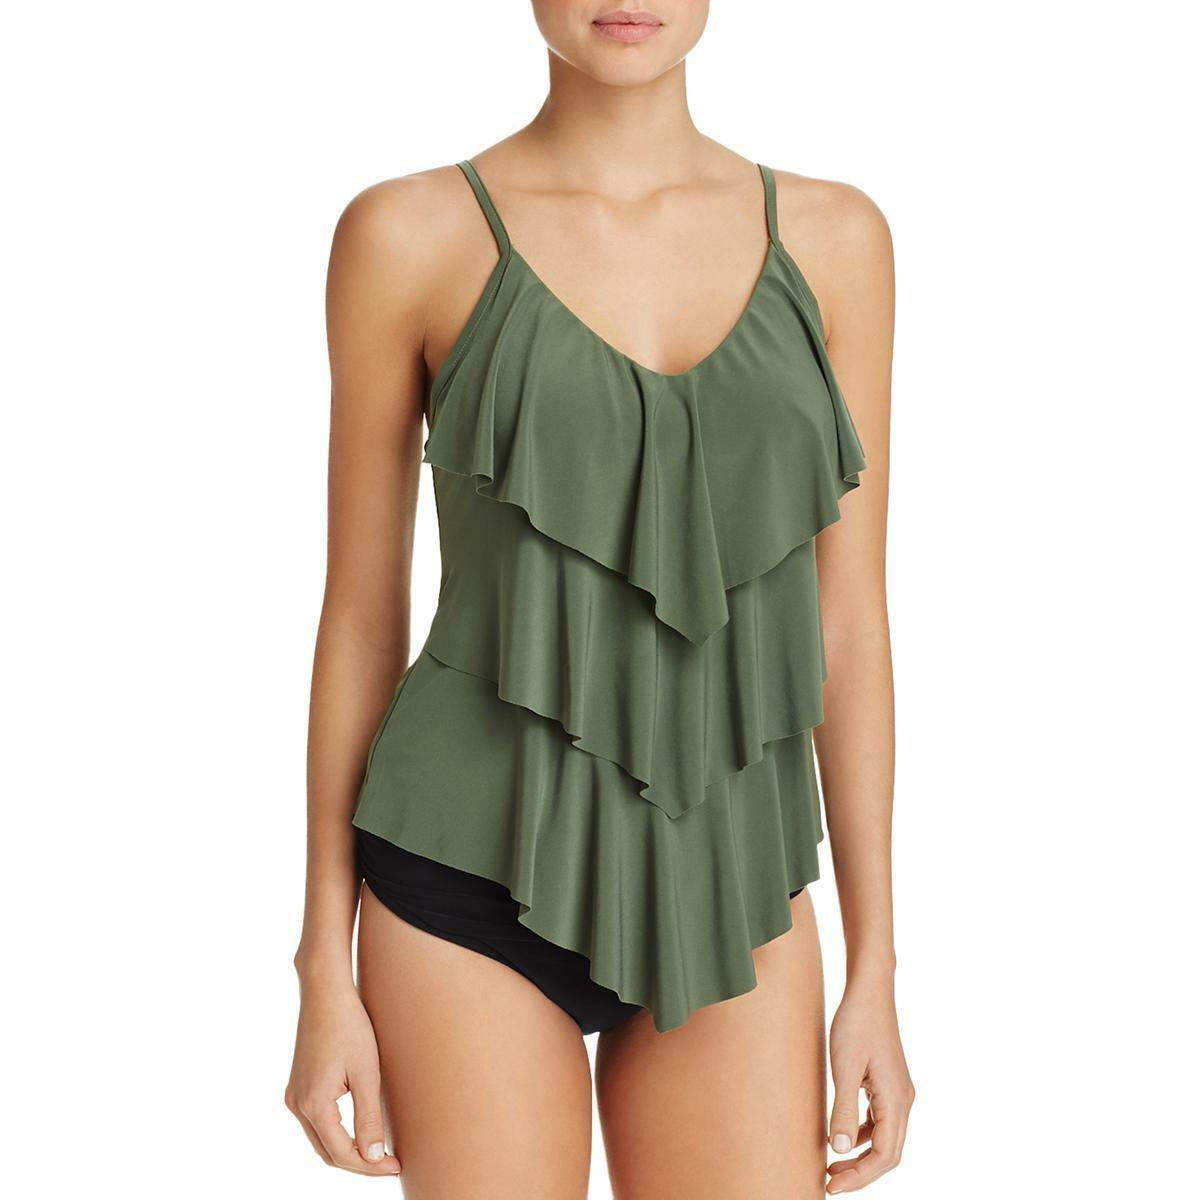 New Magicsuit Miraclesuit Tankini Rita 10 Green Tiered Ruffled 2 Piece Slimming